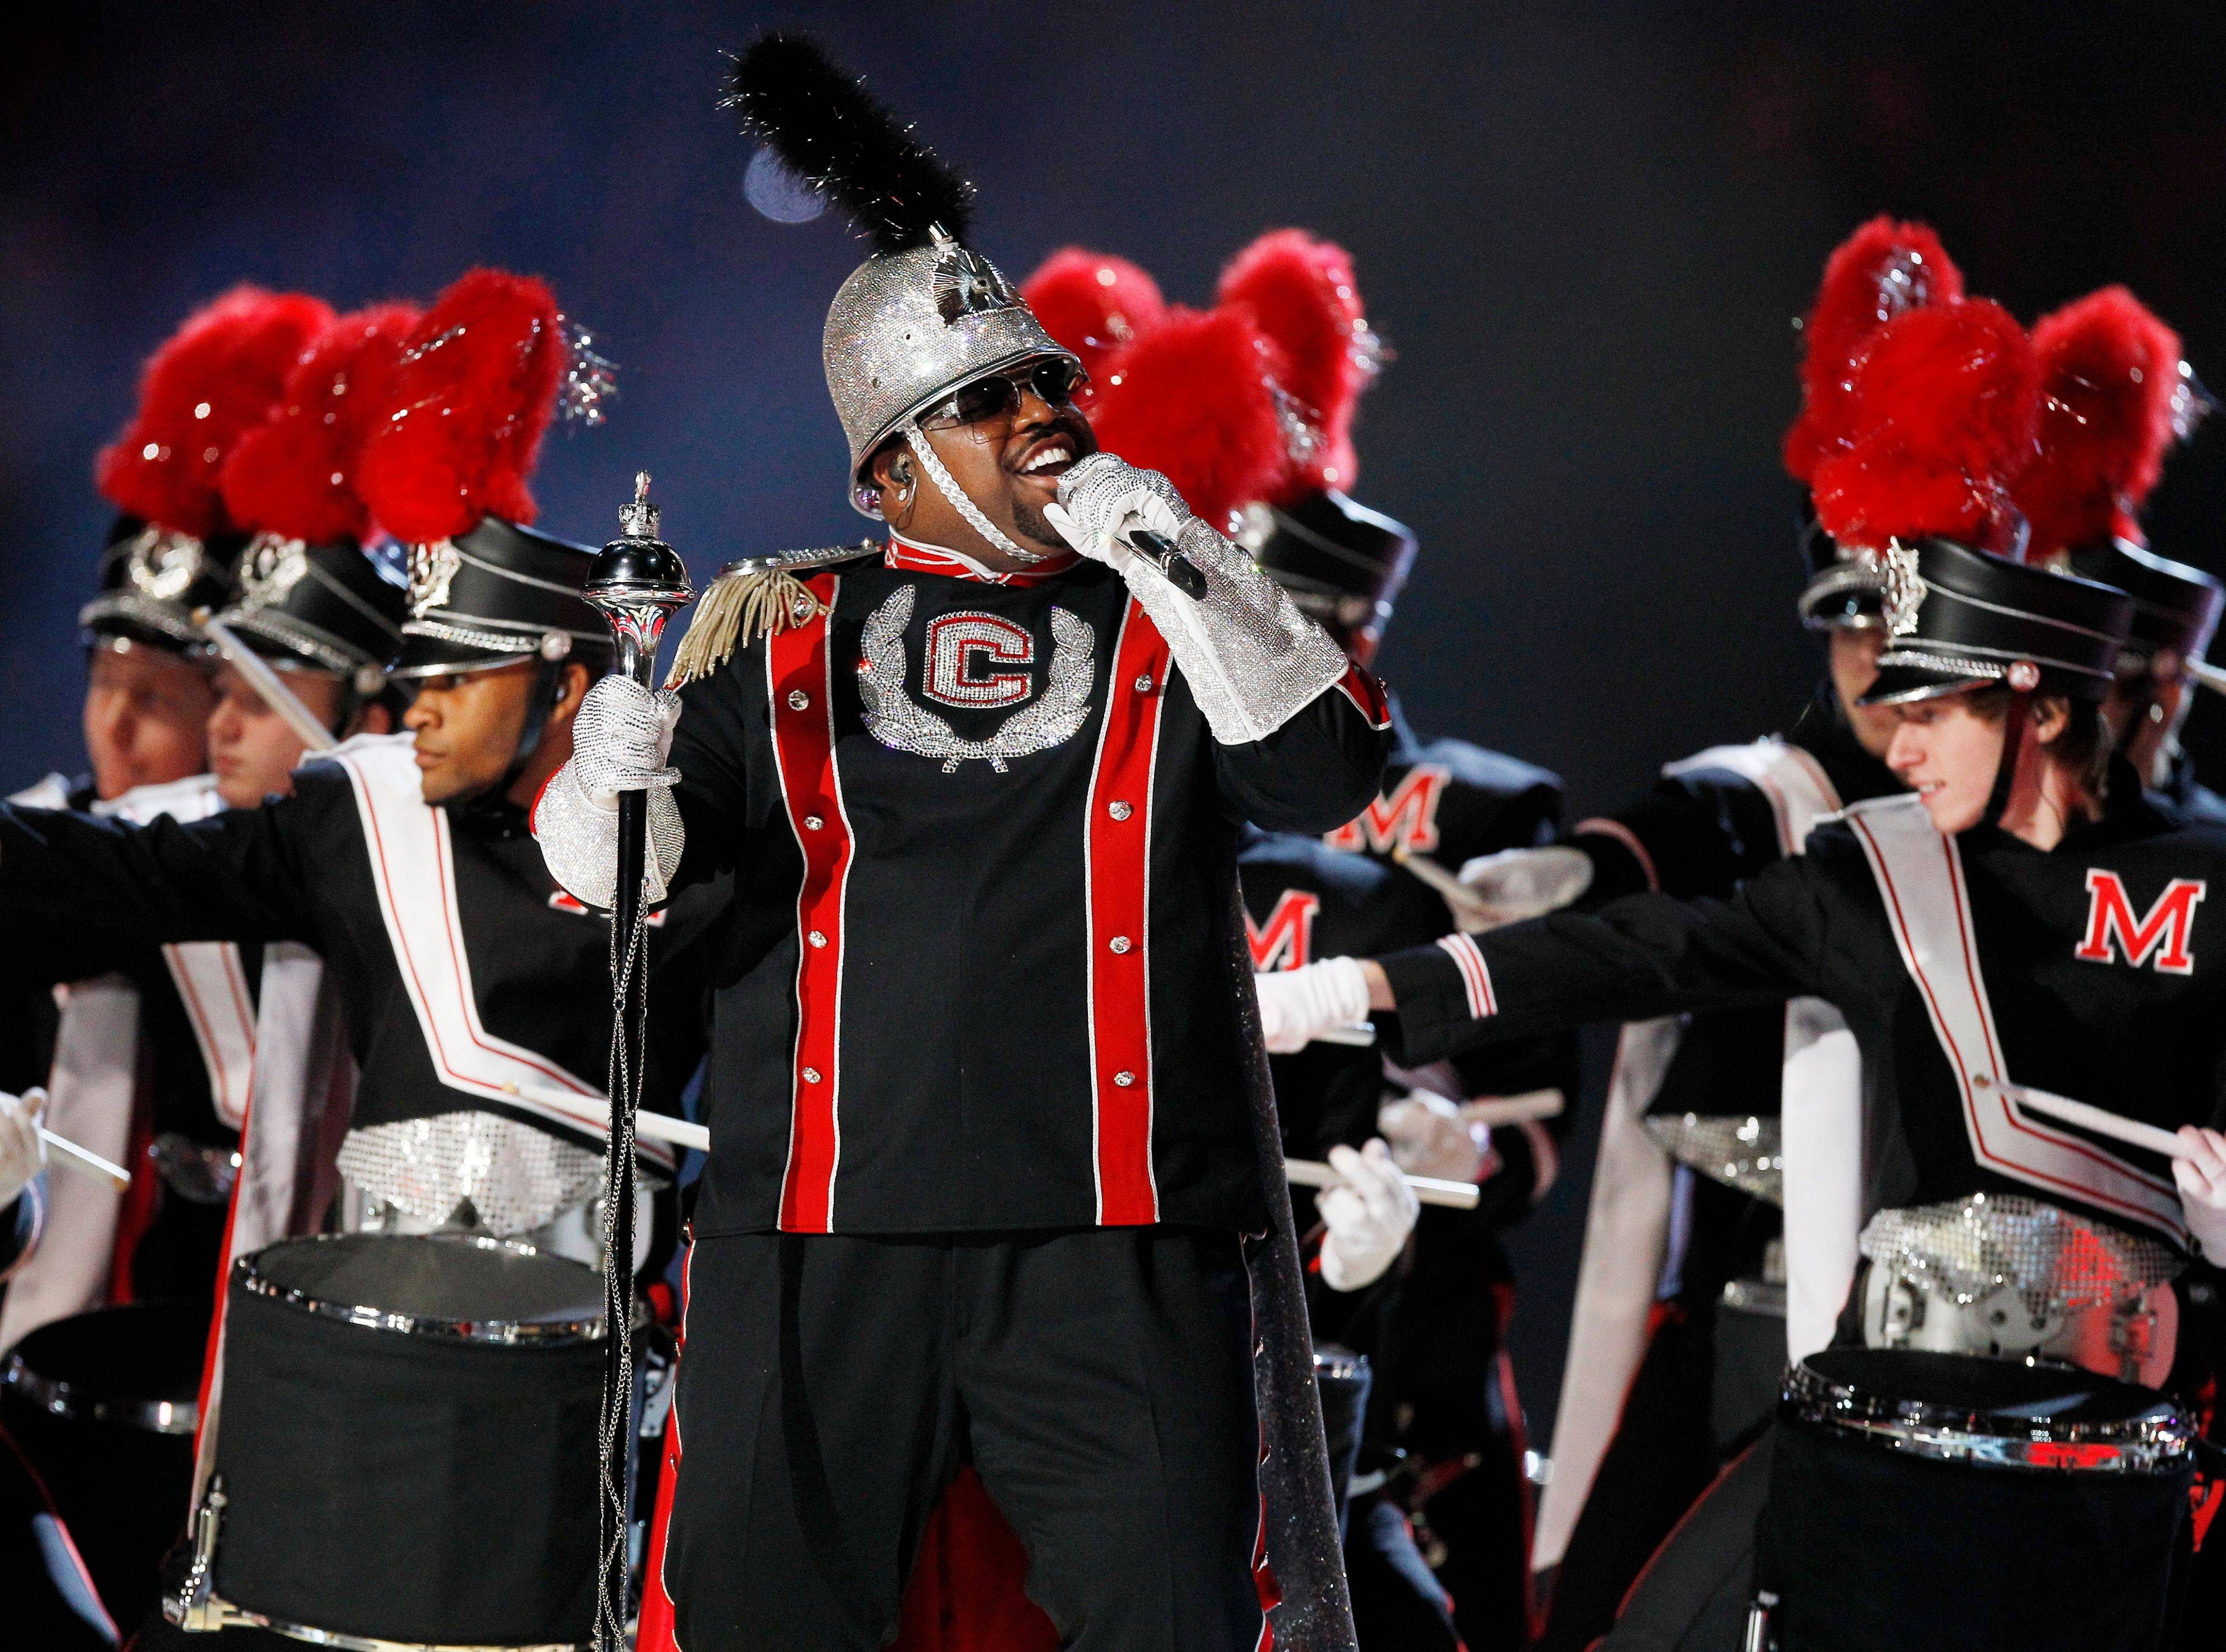 Cee Lo Green performs during Madonna's halftime show at the Super Bowl.